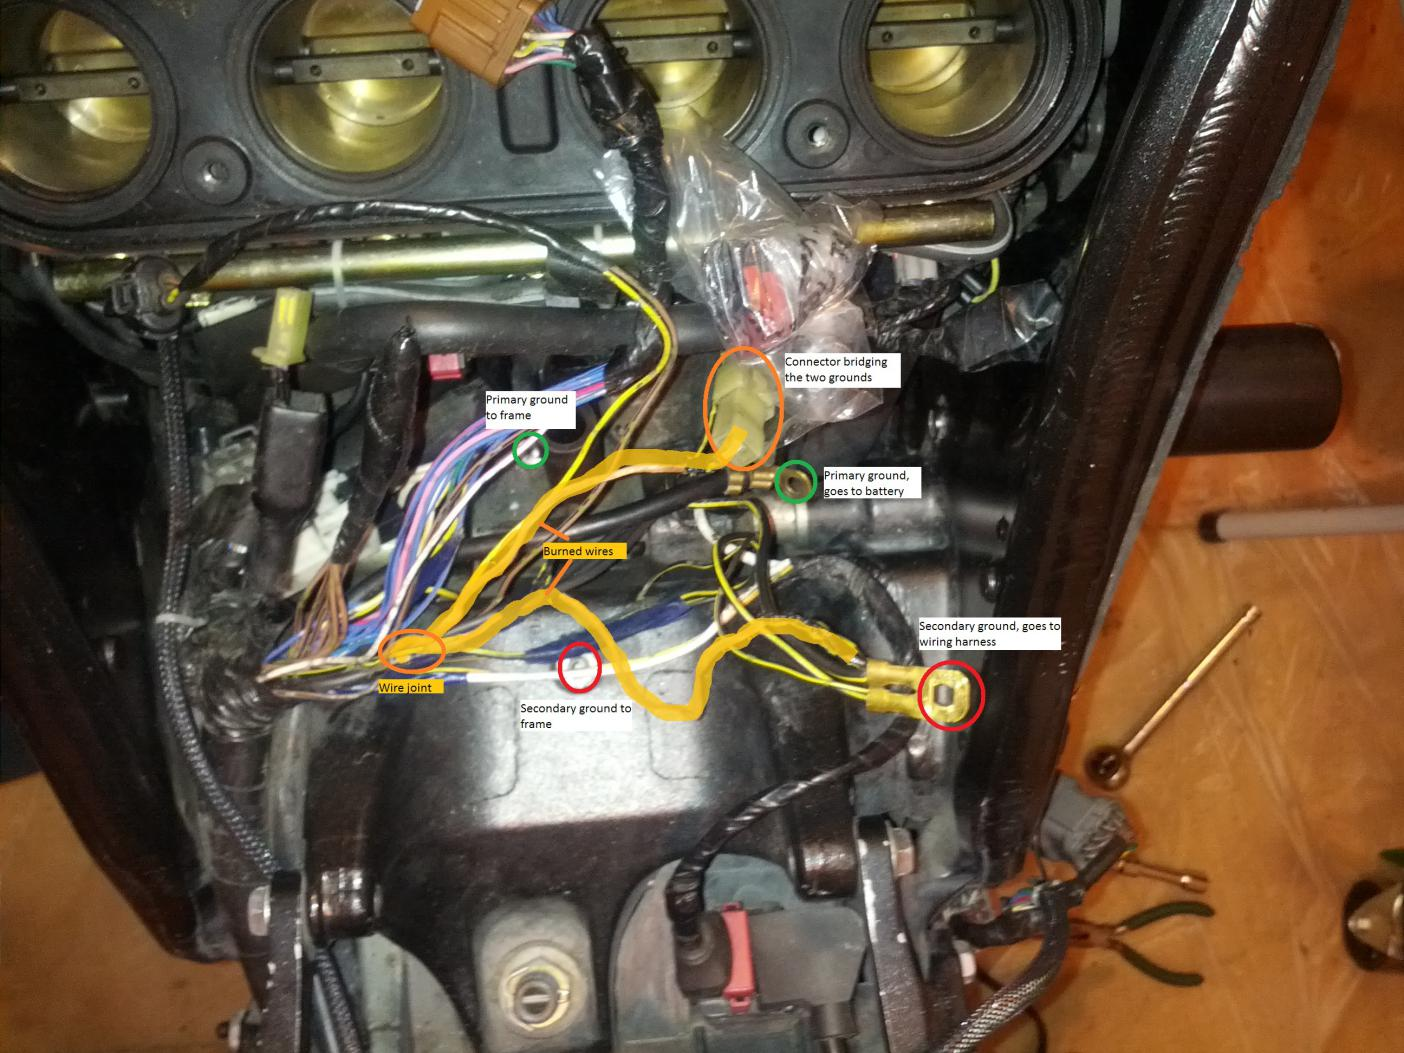 Gen 2 2006 2007 Ground Went Bad Starting Problem Finally Fixed 05 Zx6r Wiring Harness Click Image For Larger Version Name Img 20140418 213114 Edit Views 563 Size